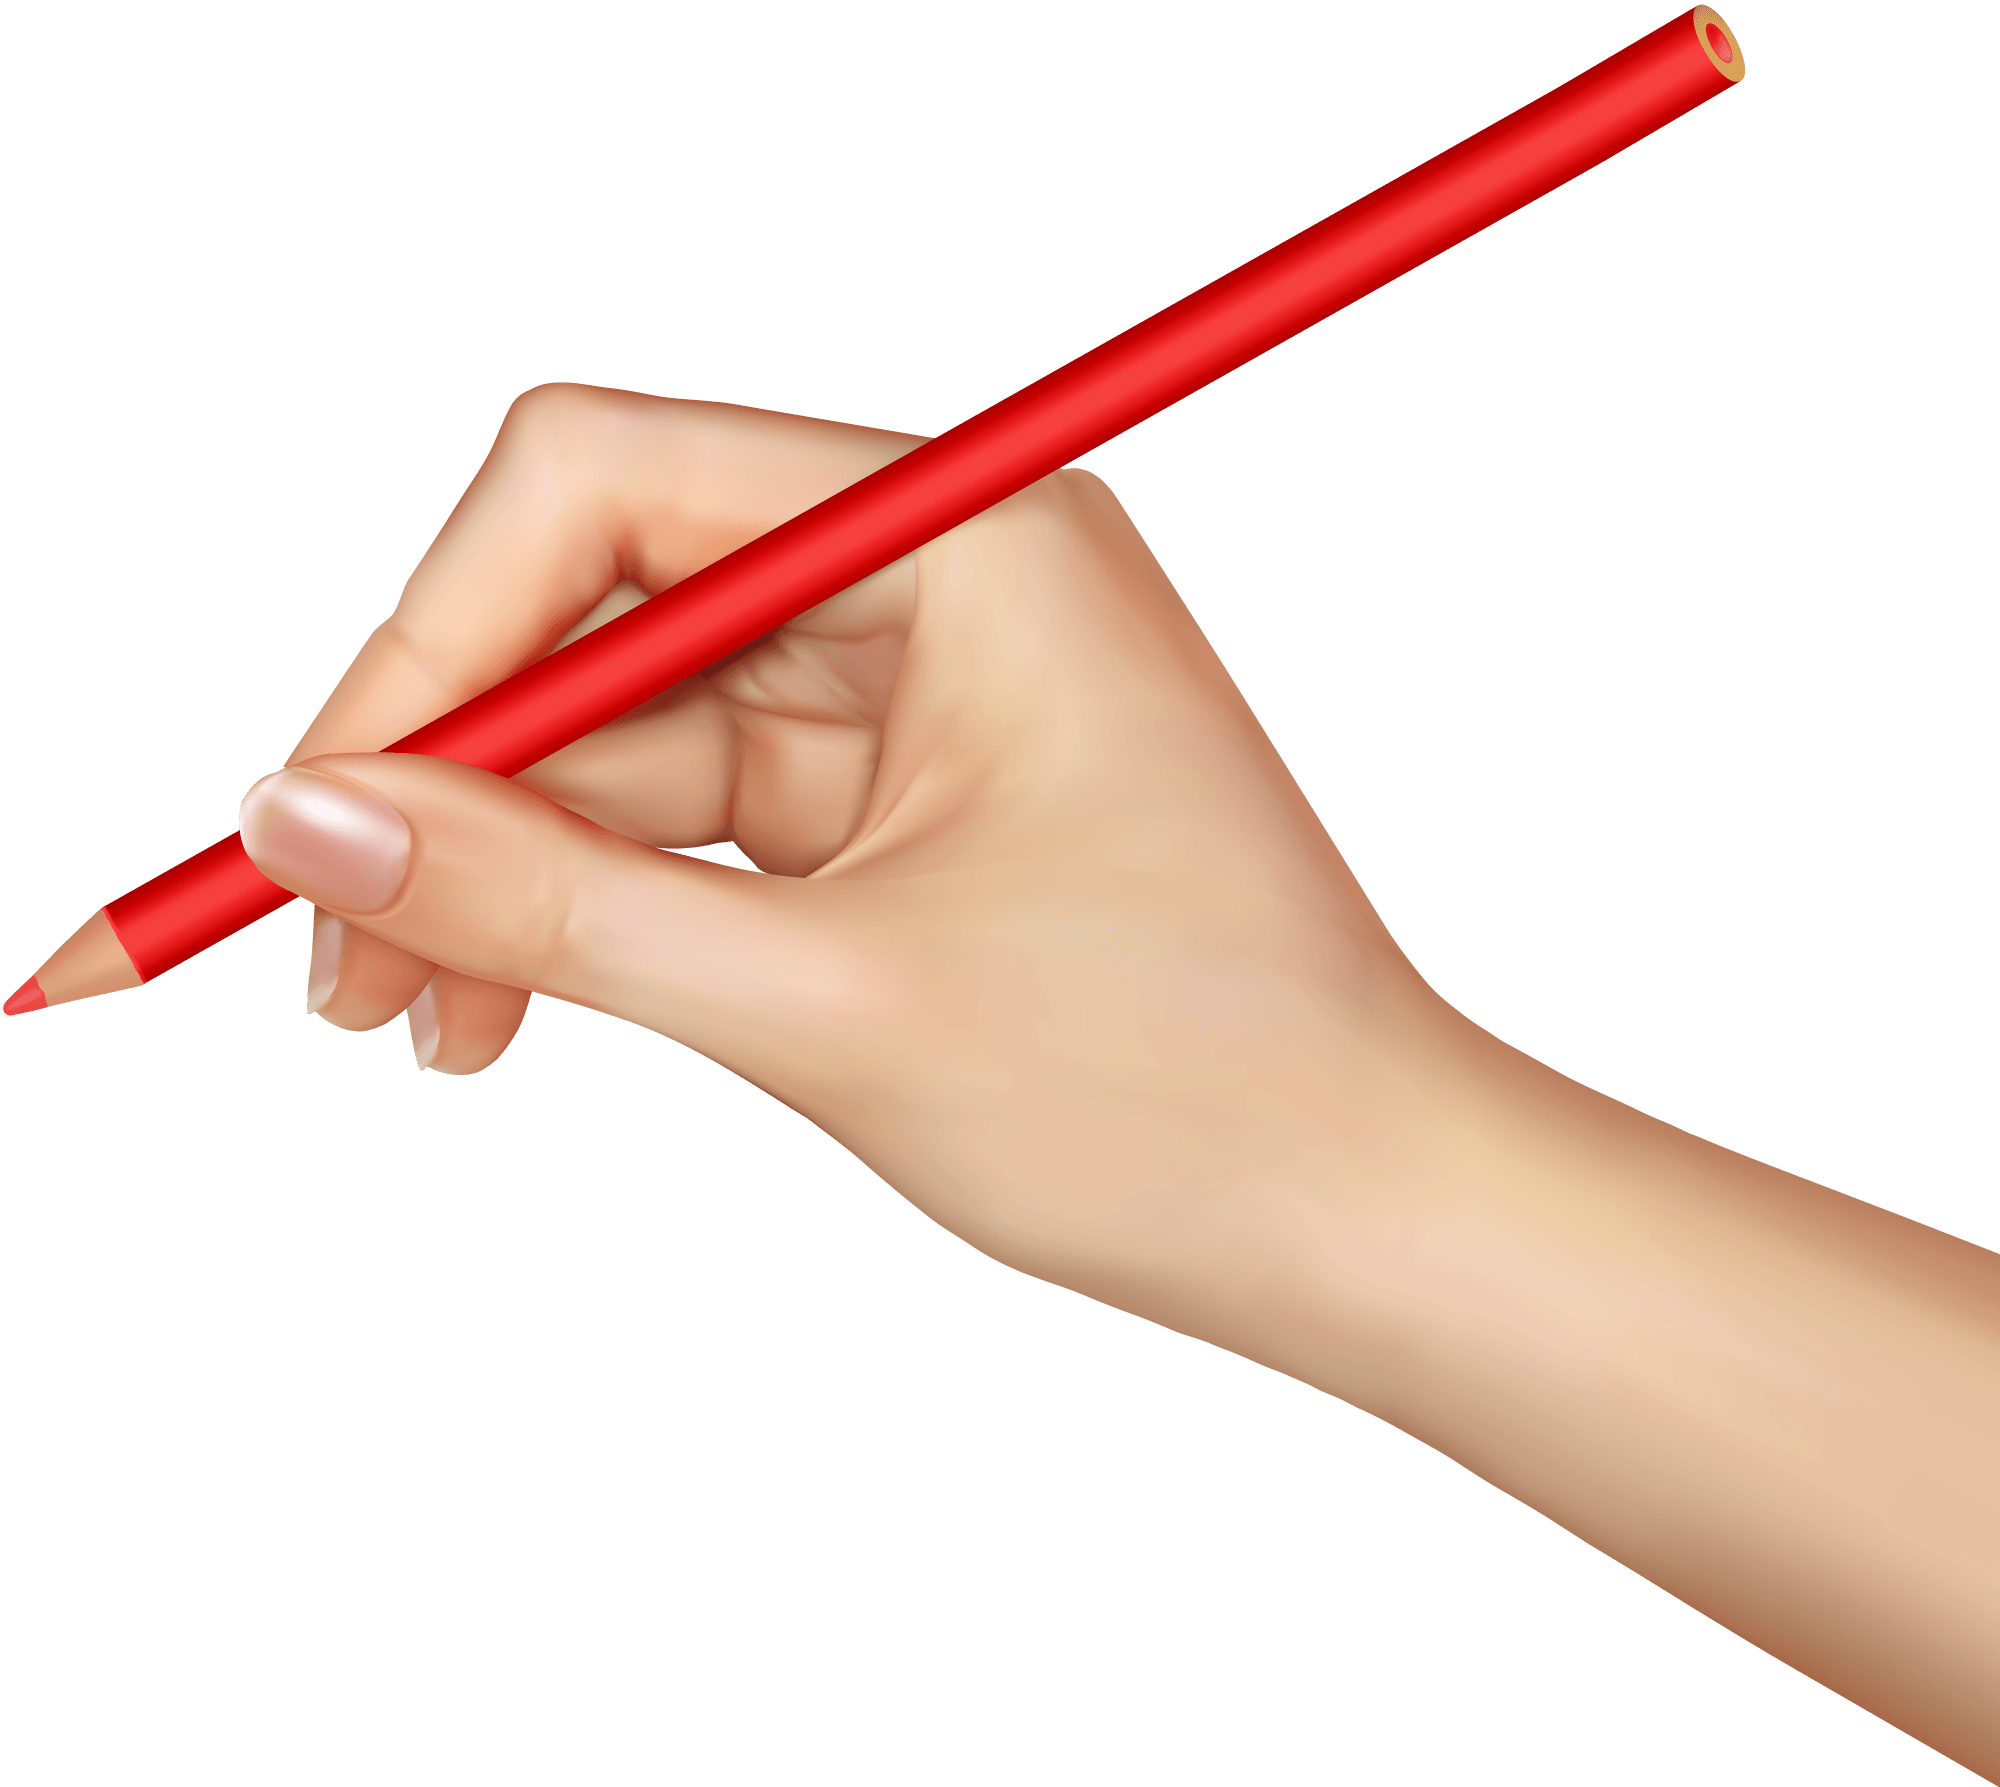 Hands clipart pencil. Free hand cliparts download